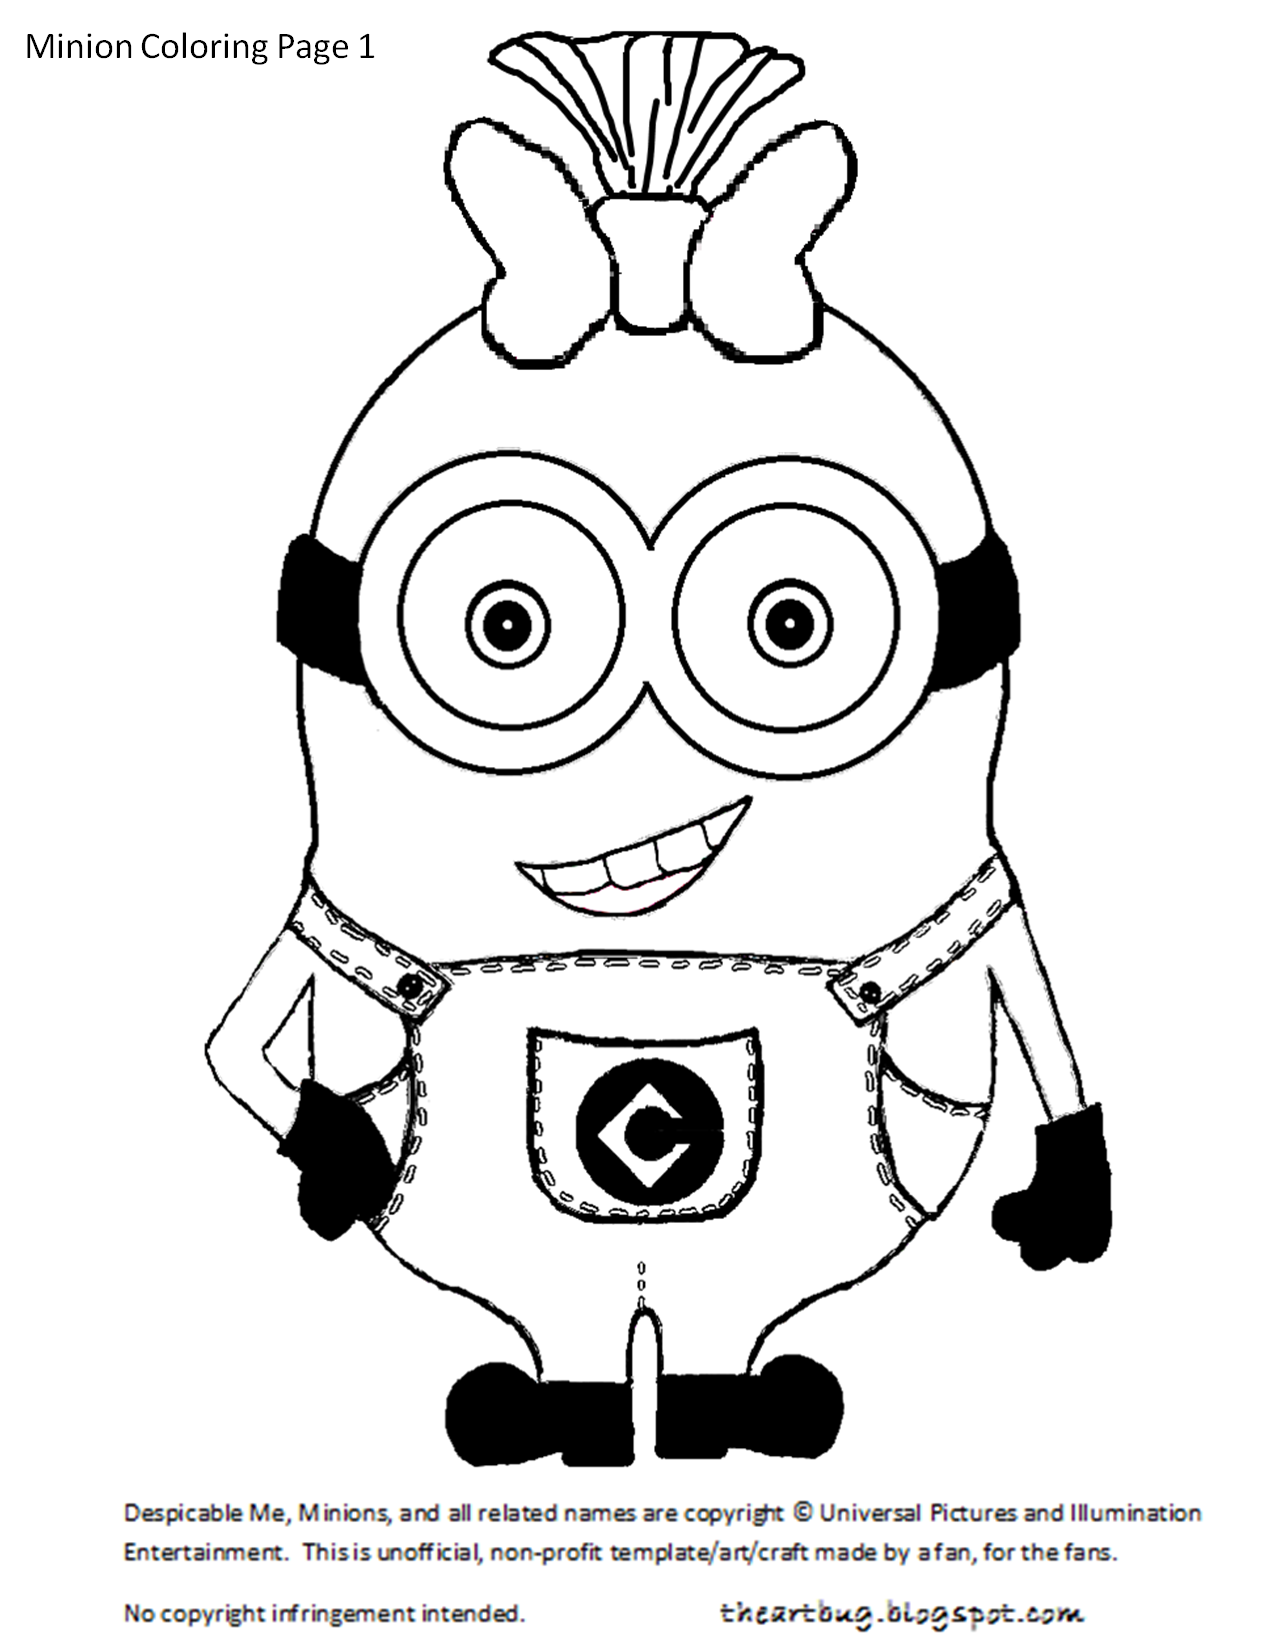 FREE PINK Minion Theme Party Printables  Minion coloring pages